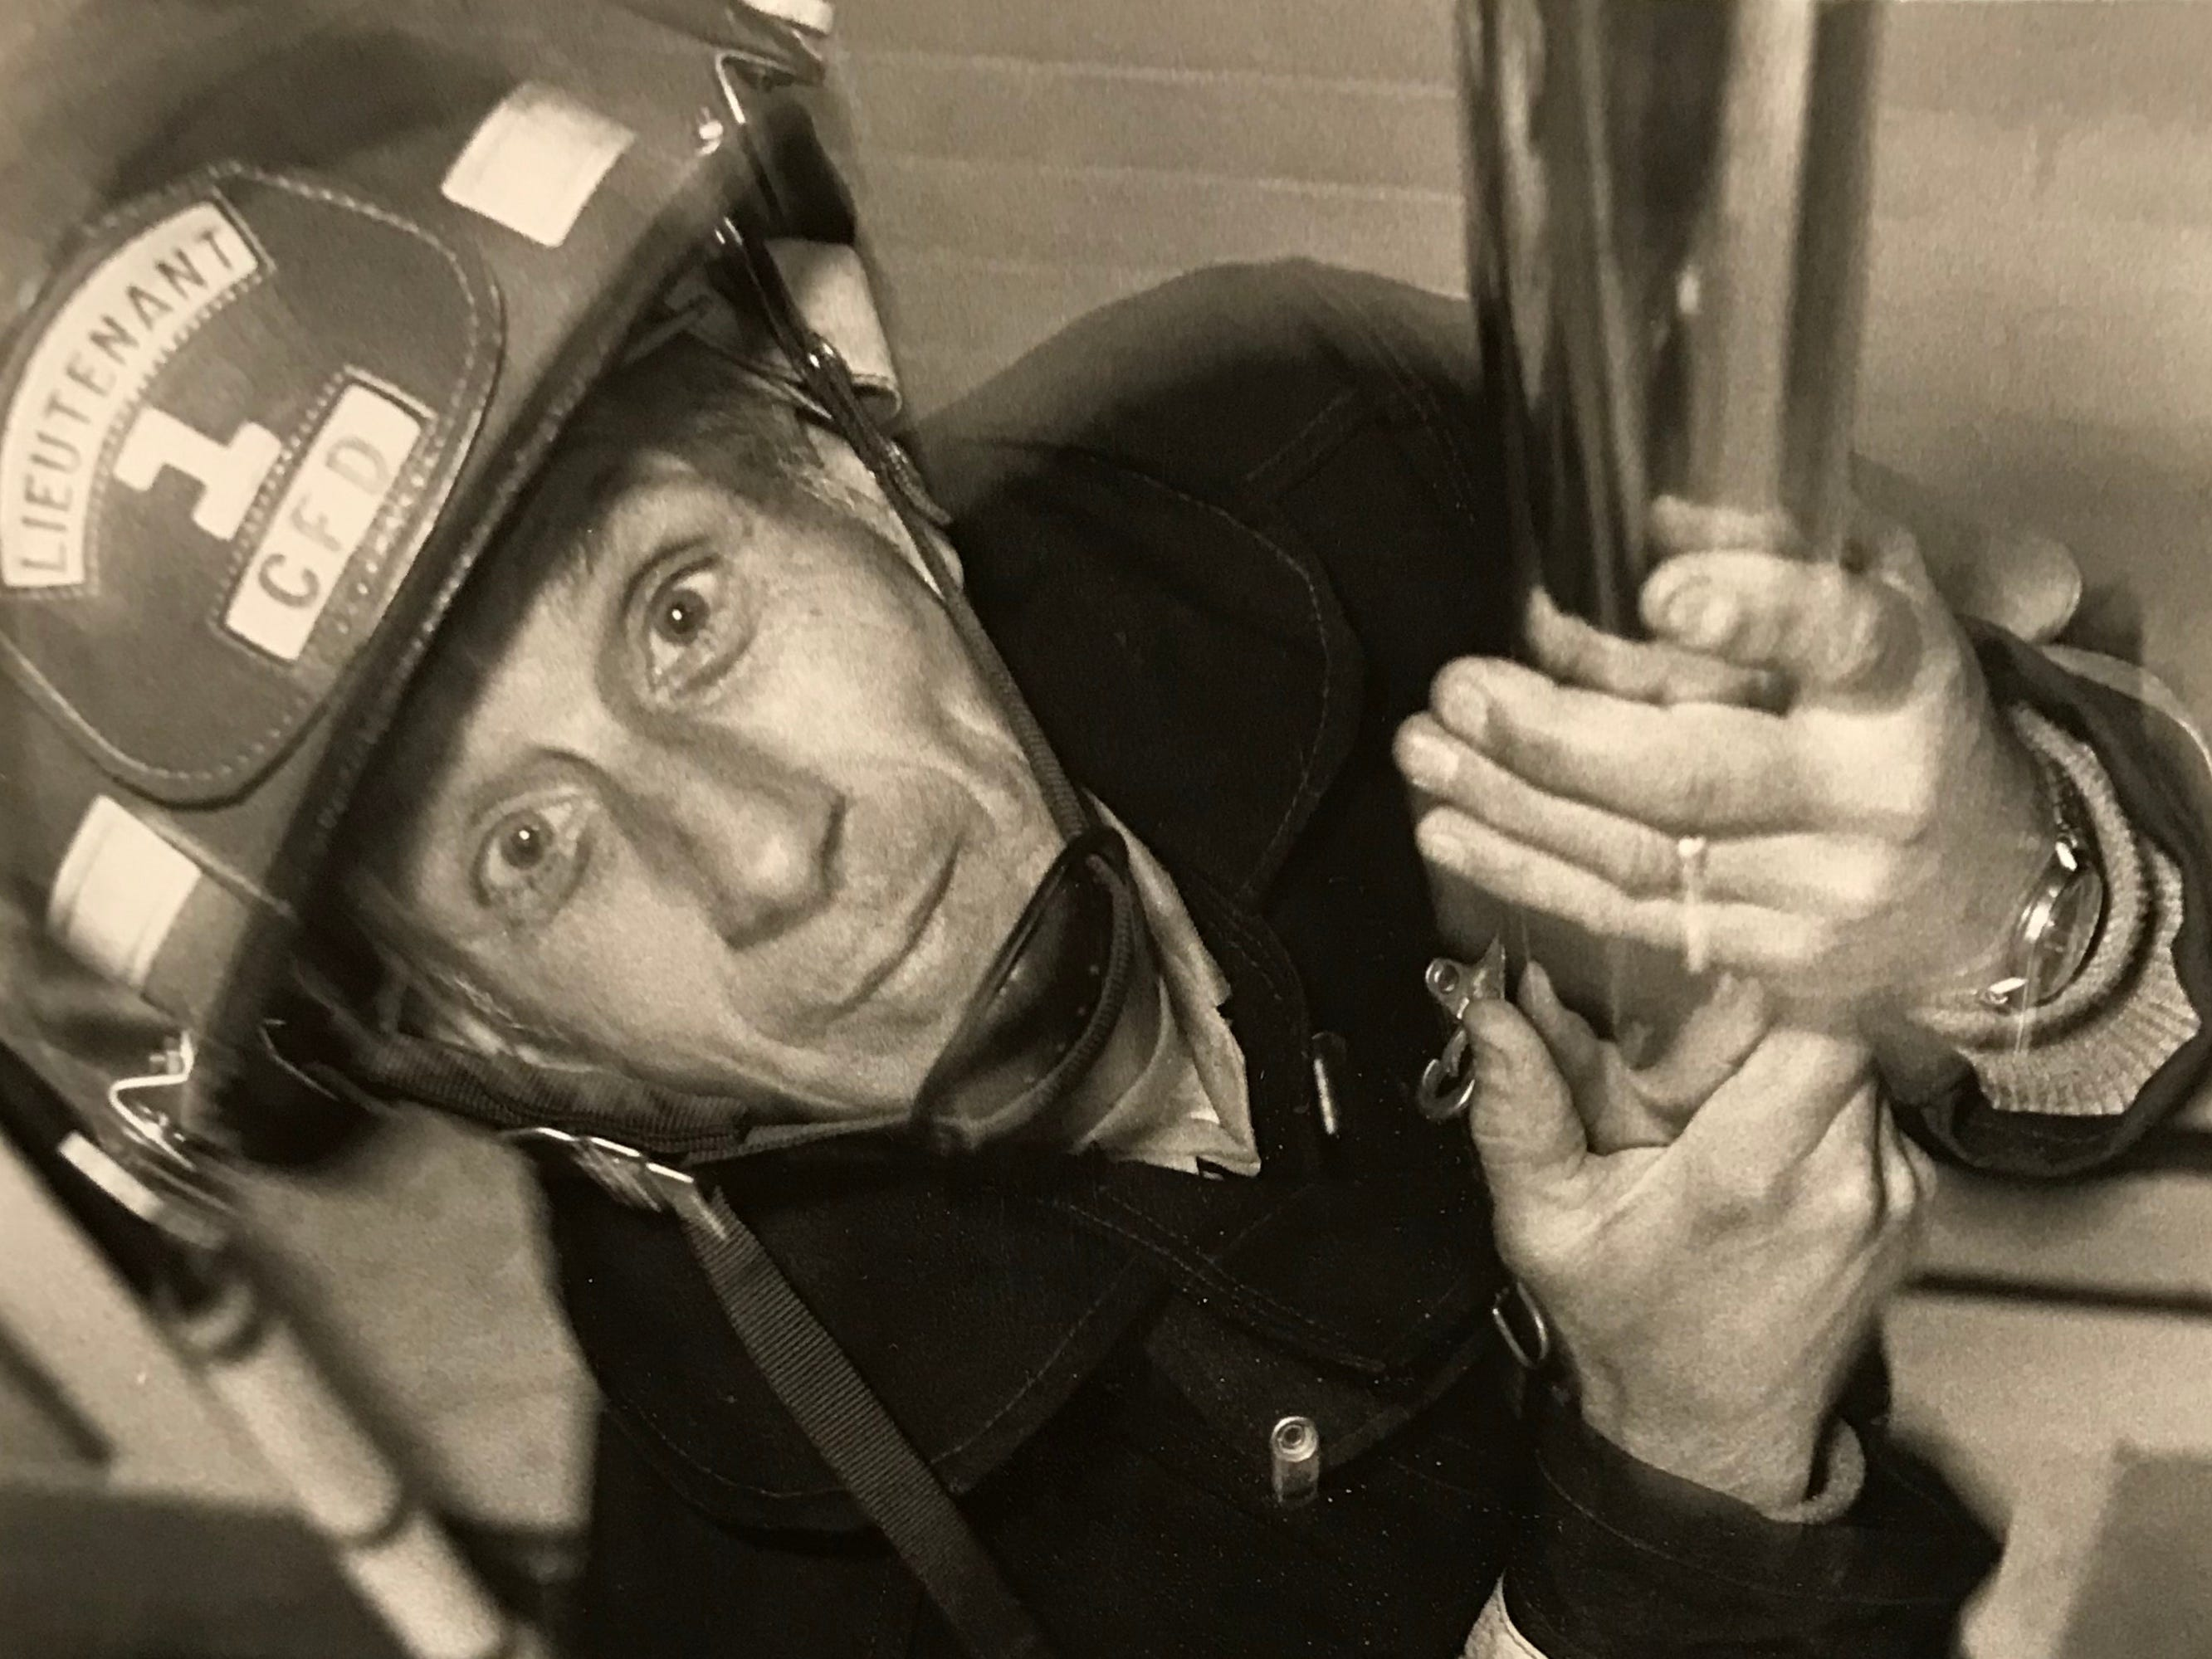 In June 1985, Richard Dearth, 53, was the oldest working firefighter at the Chillicothe Fire Department.